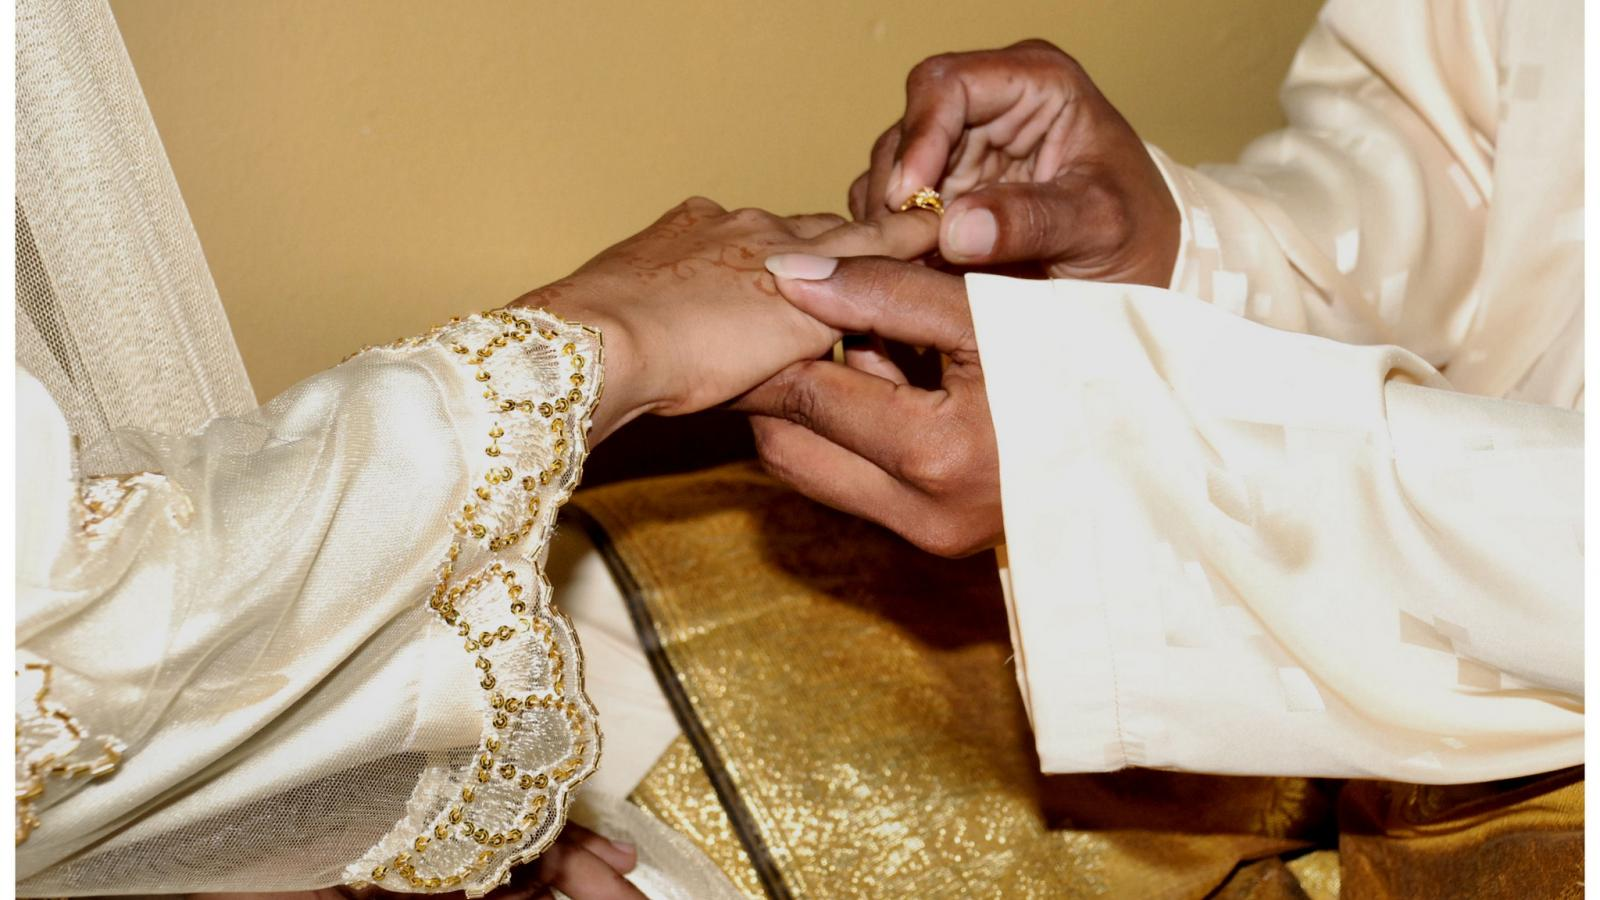 The Sanctity of Marriage - This American Life